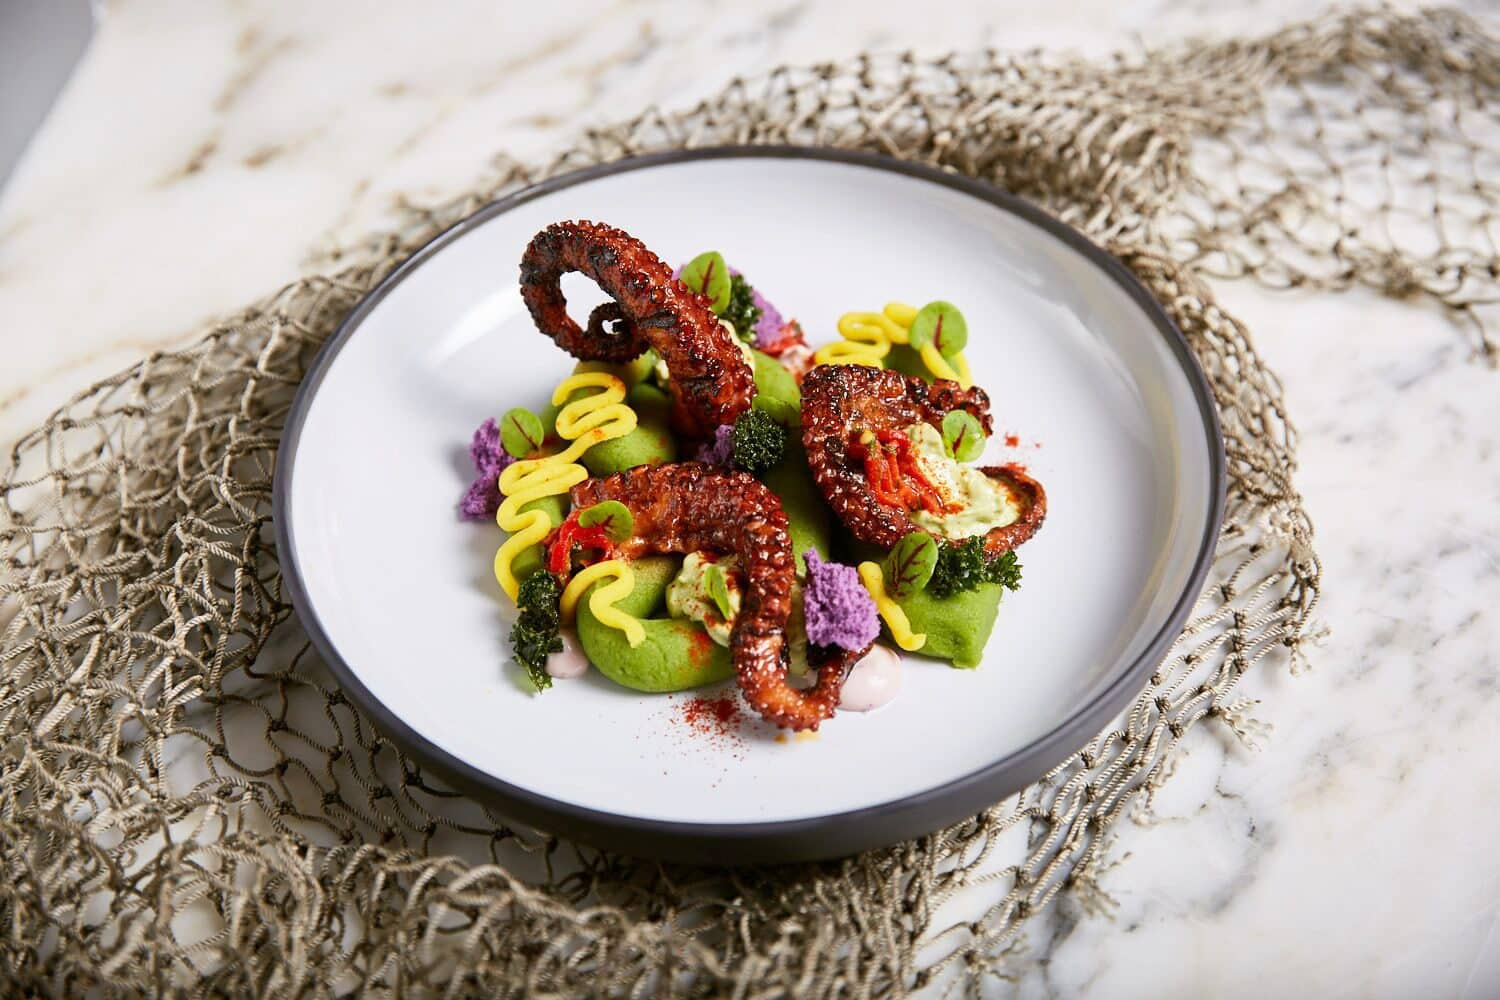 Octopus dish at La Mar by Gastón Acurio